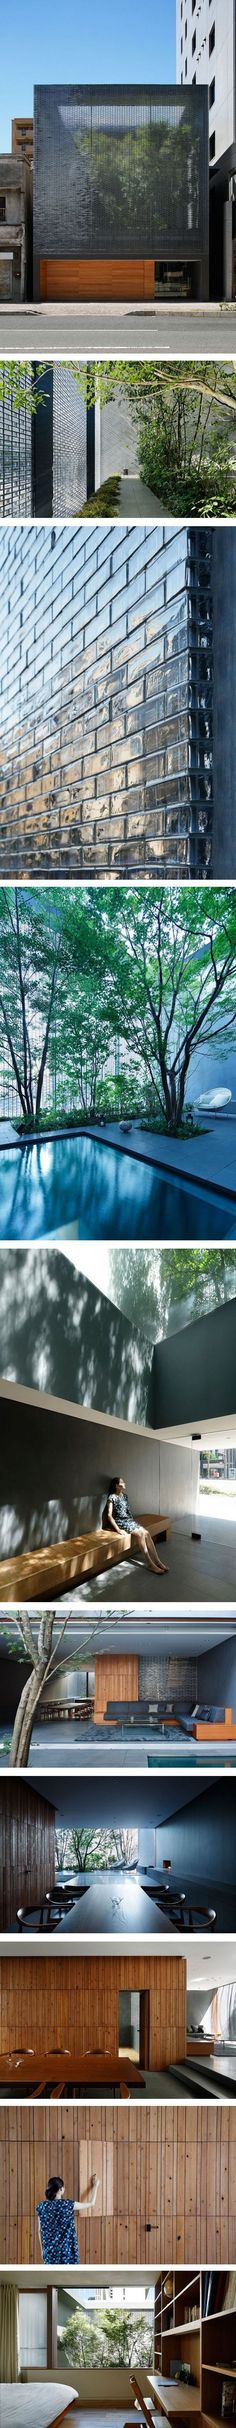 Glasshouse in Hiroshima, Japan. By Hiroshi Nakamura & NAP architects. Fotos by Nacasa & Partners #Architectural Solar